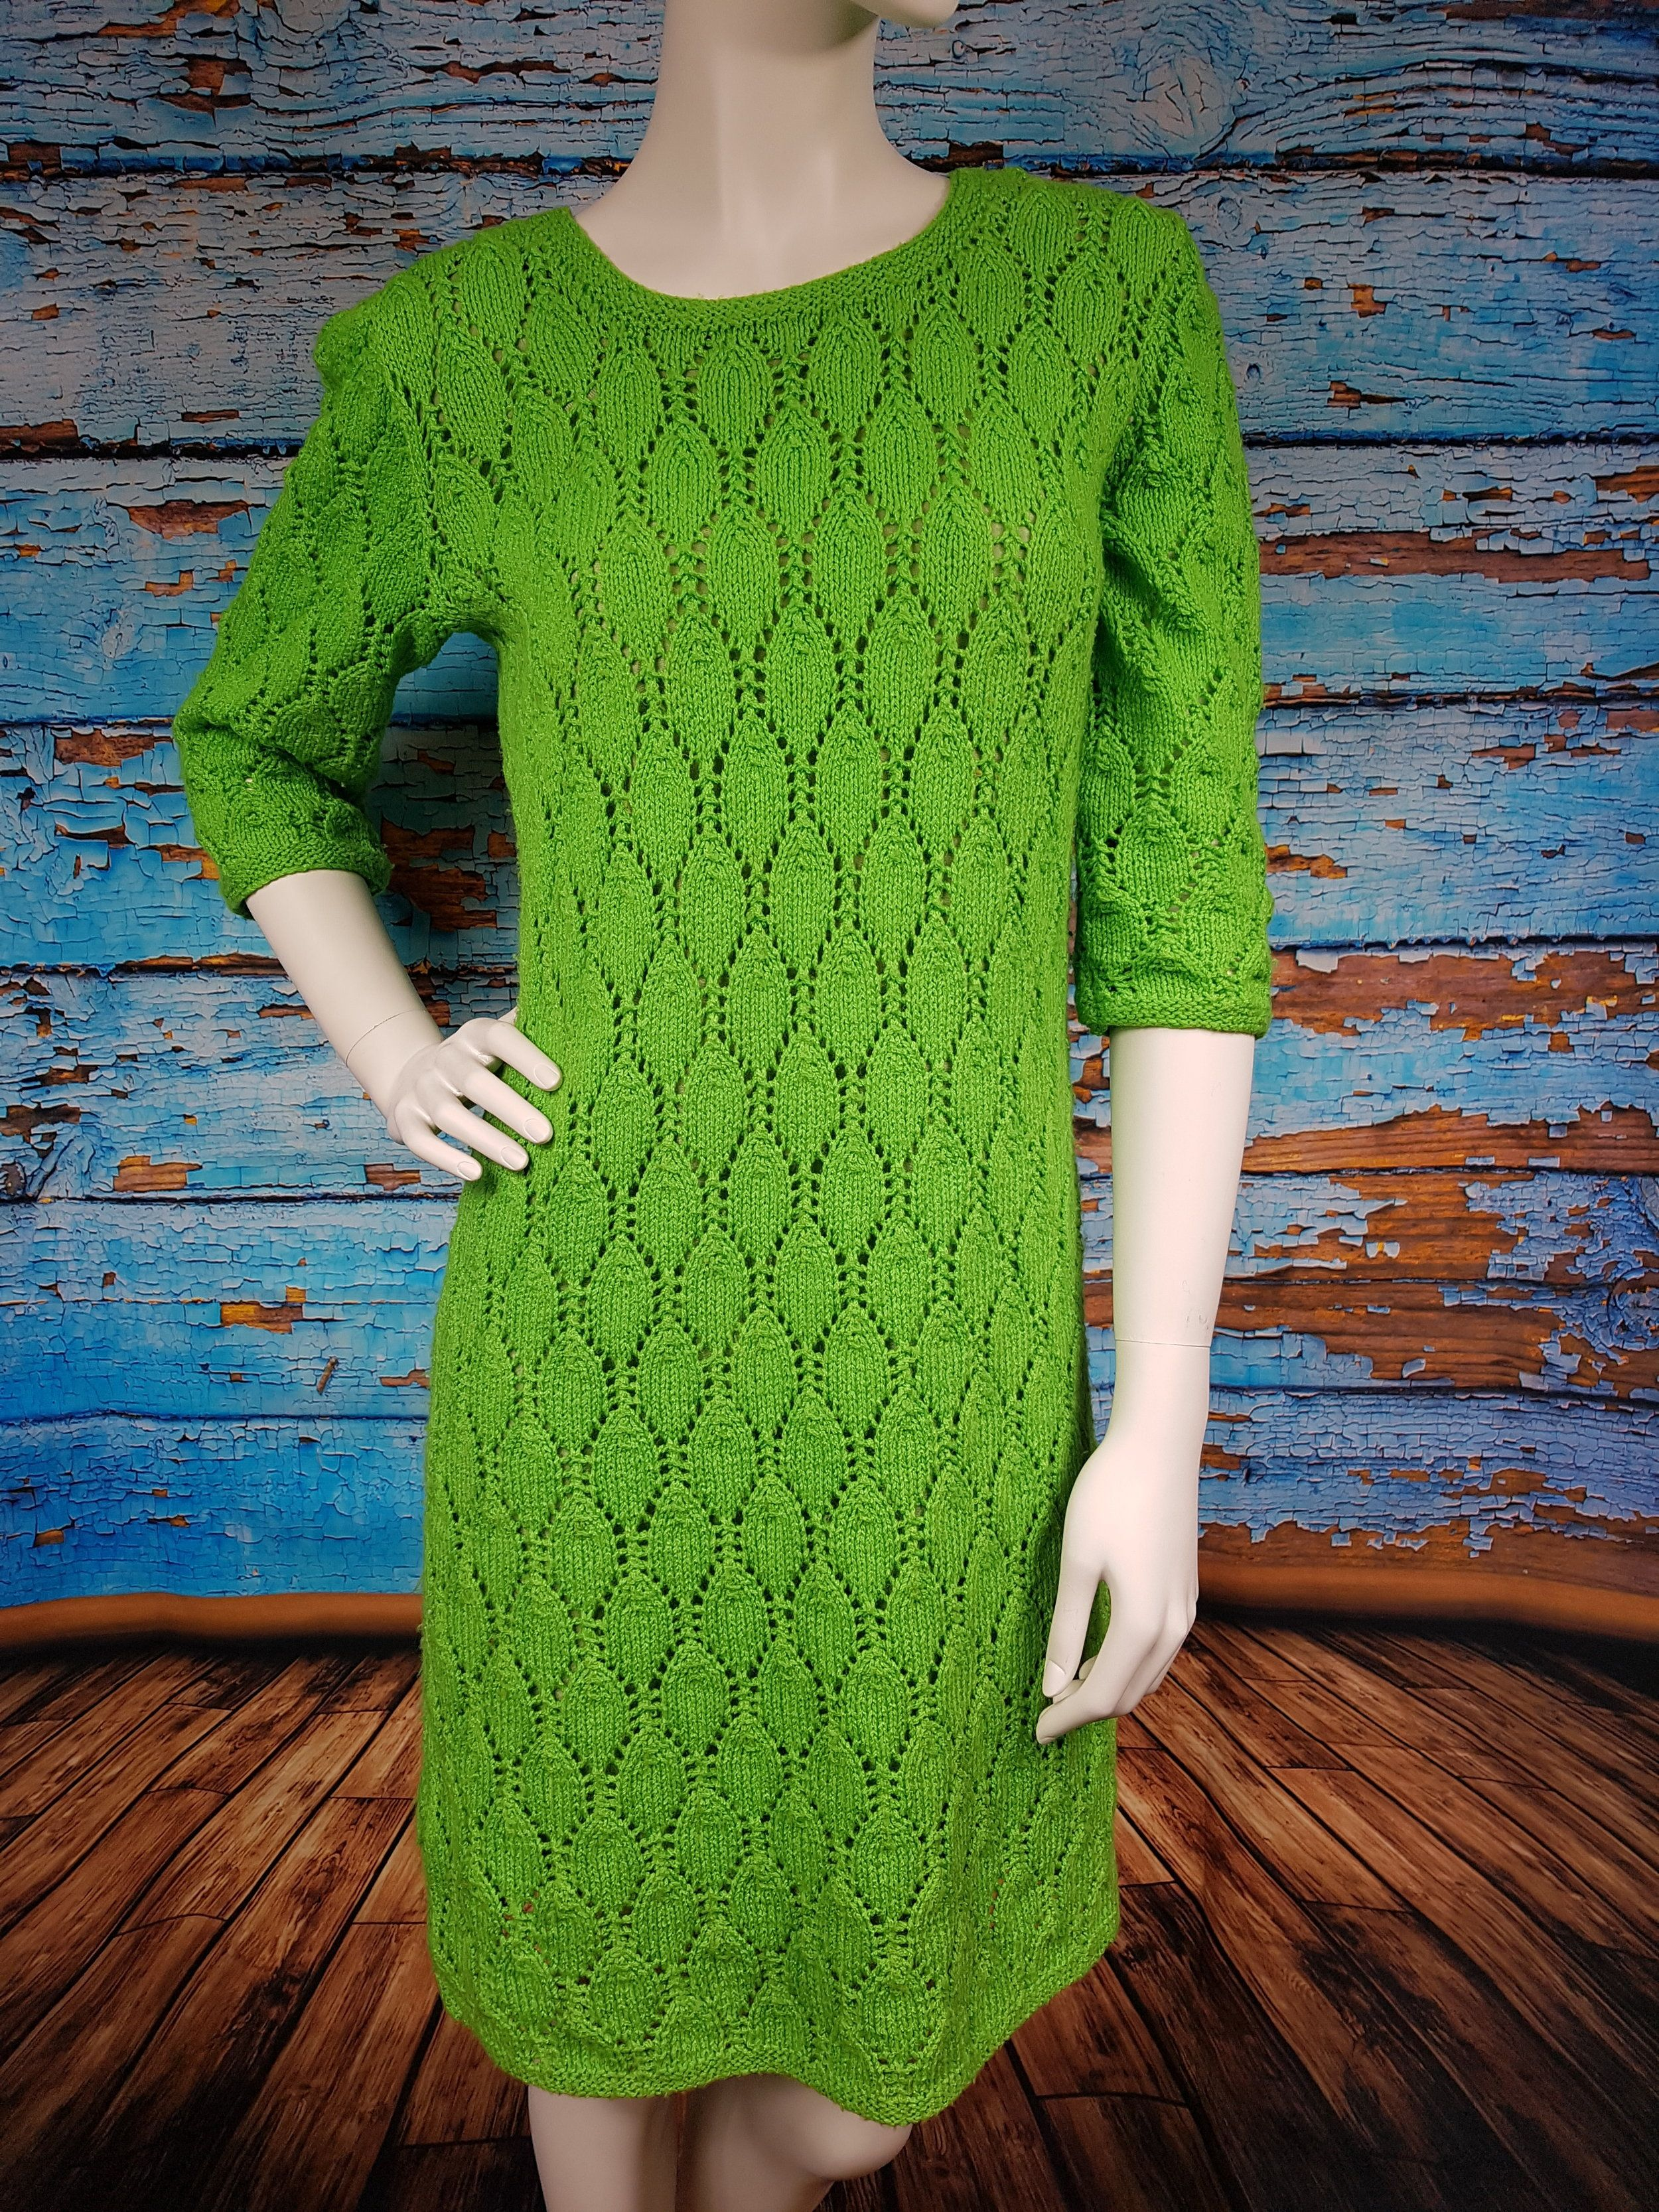 60s green dress  s  s hand knitted green dress fully lined  vintage fashion